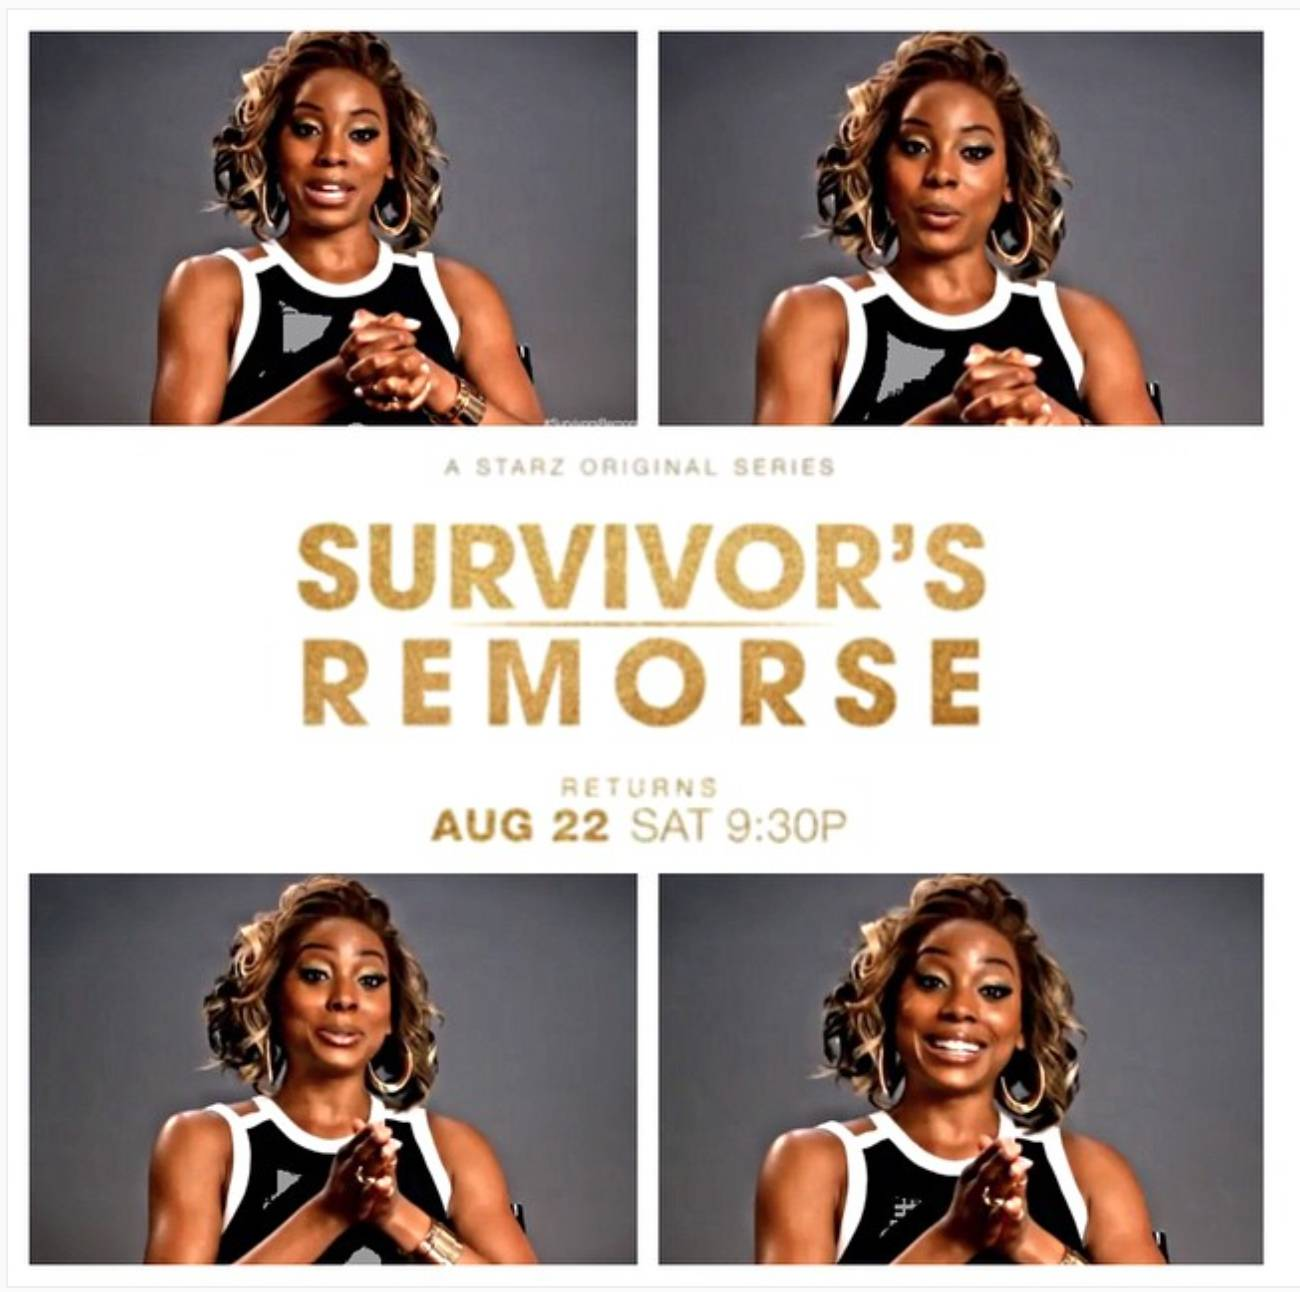 Erica Was Filming Another Show - You may have spotted Erica on the hit series Survivor's Remorse. She's back for season two, which premieres later this month. That means Erica twice a week, for all those interested.  (Photo: Erica Ash via Instagram)